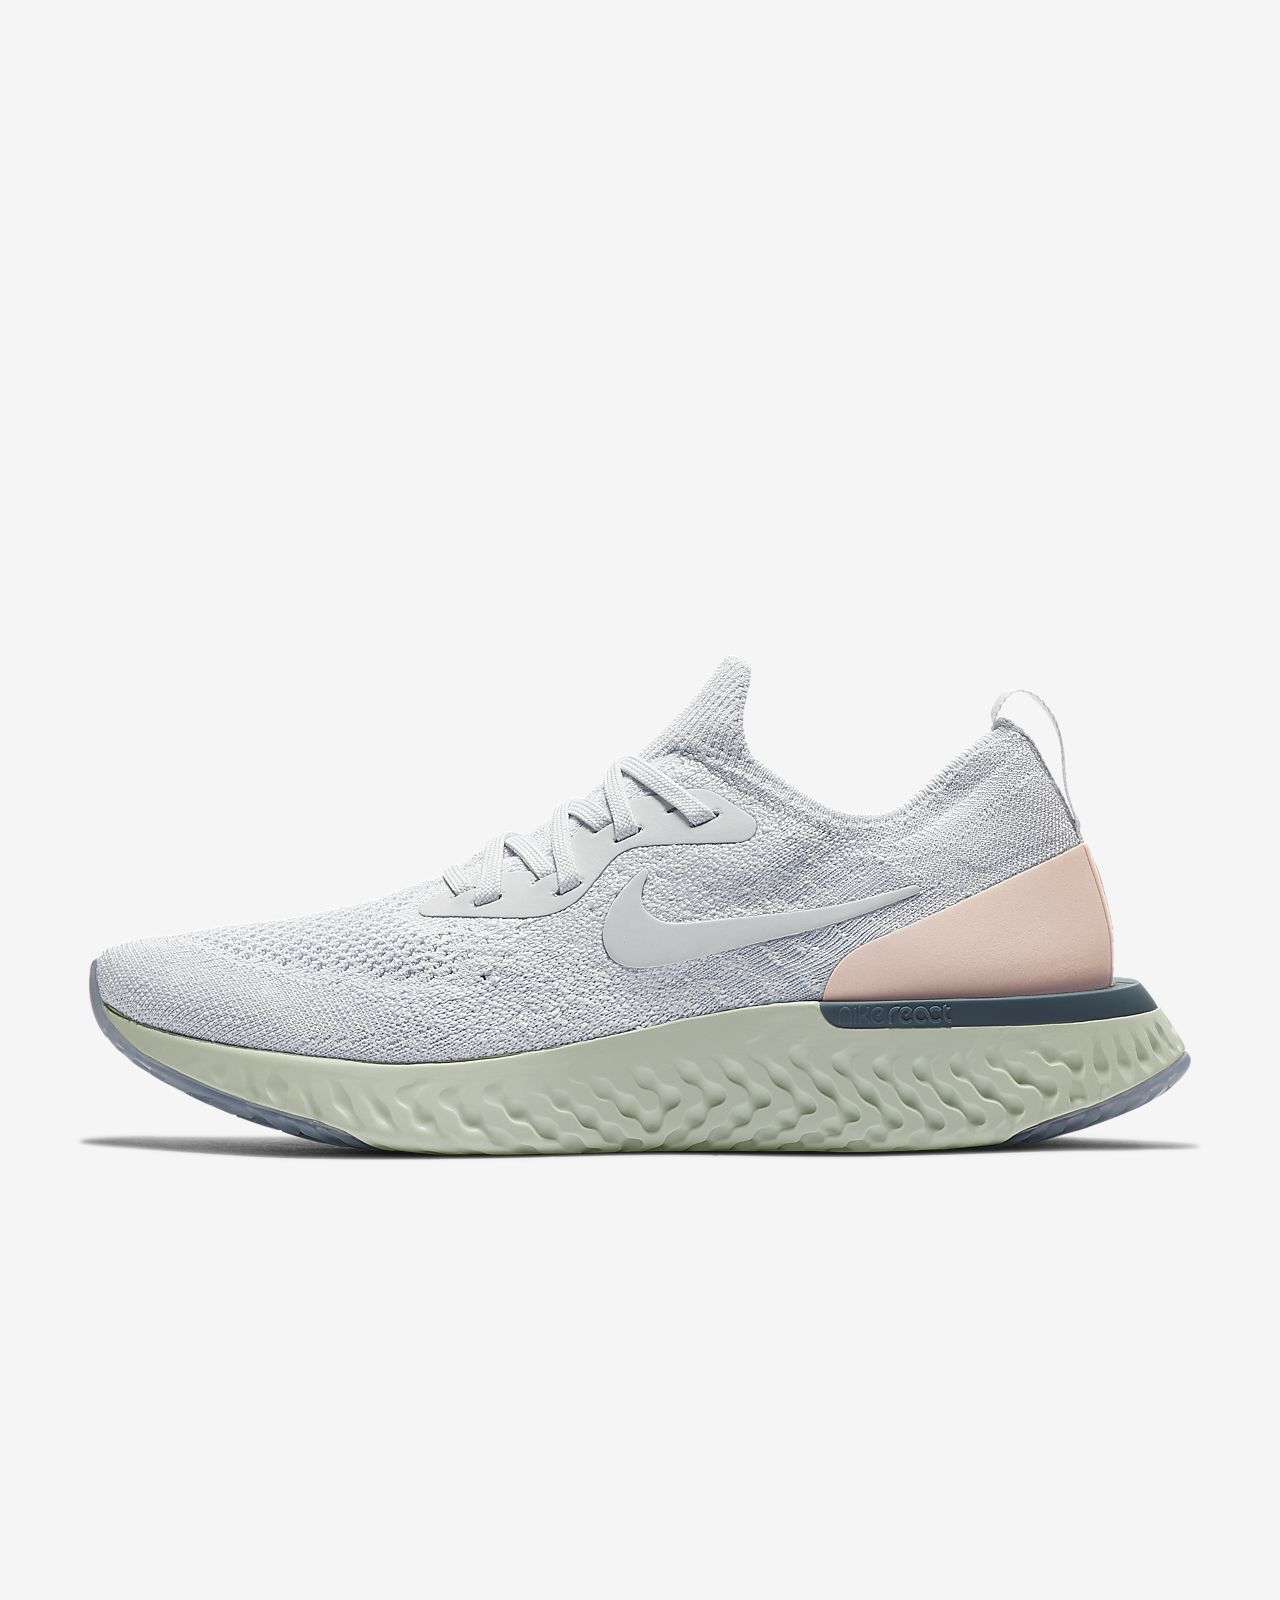 Nike Epic React Flyknit 1 Women's Running Shoe